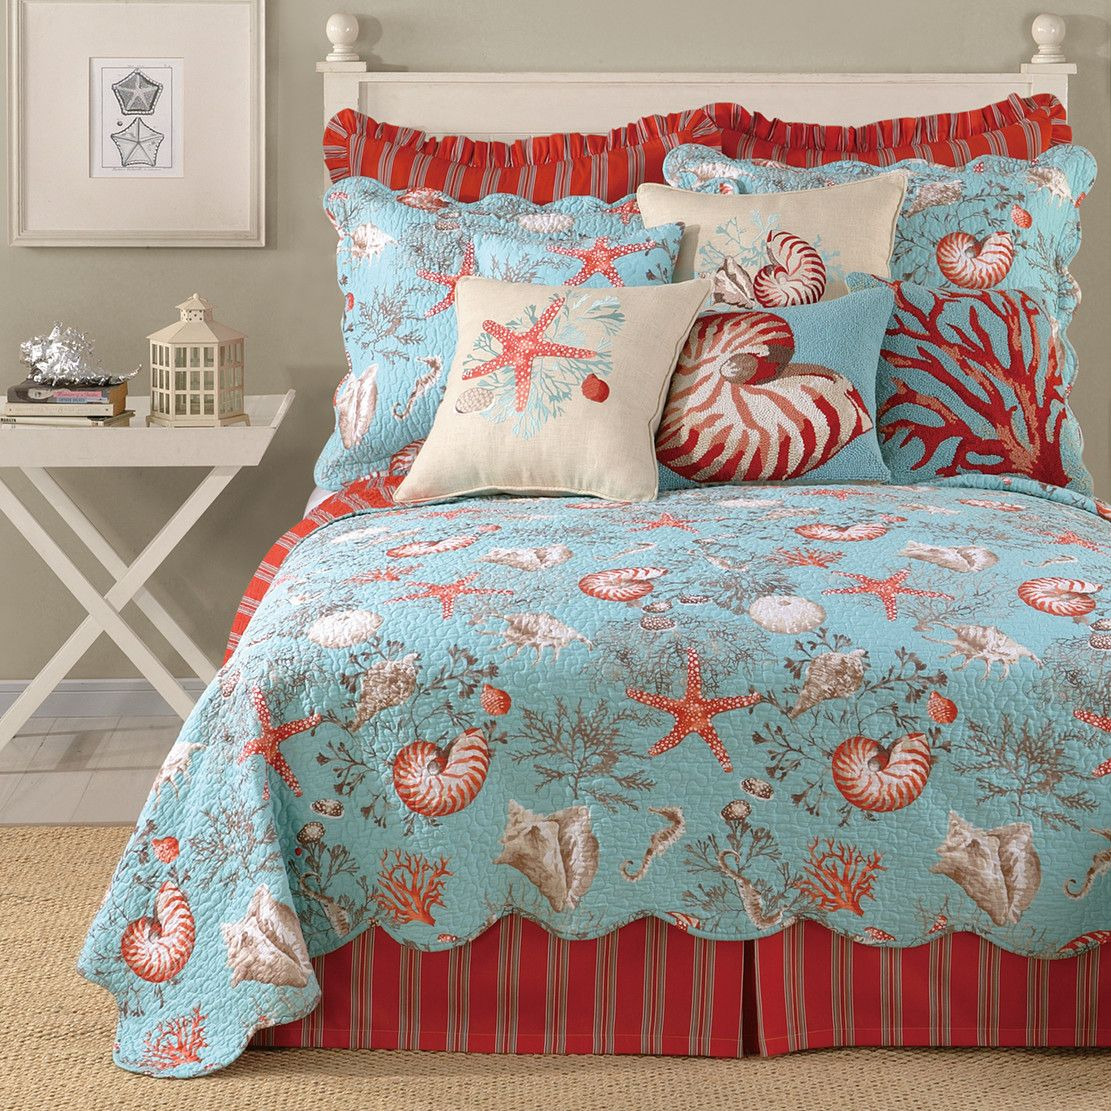 Laurel and Mayfair Sealife Quilt | Naples guest room | Pinterest | on decorating guest bedrooms on pinterest, decorating storage, redo guest bedroom, painting a guest bedroom, designing a guest bedroom, decorating kitchen, furnishing a guest bedroom, scandinavian bedroom, decorating office, decorating powder room, decorate small office in bedroom, decorating bathroom,